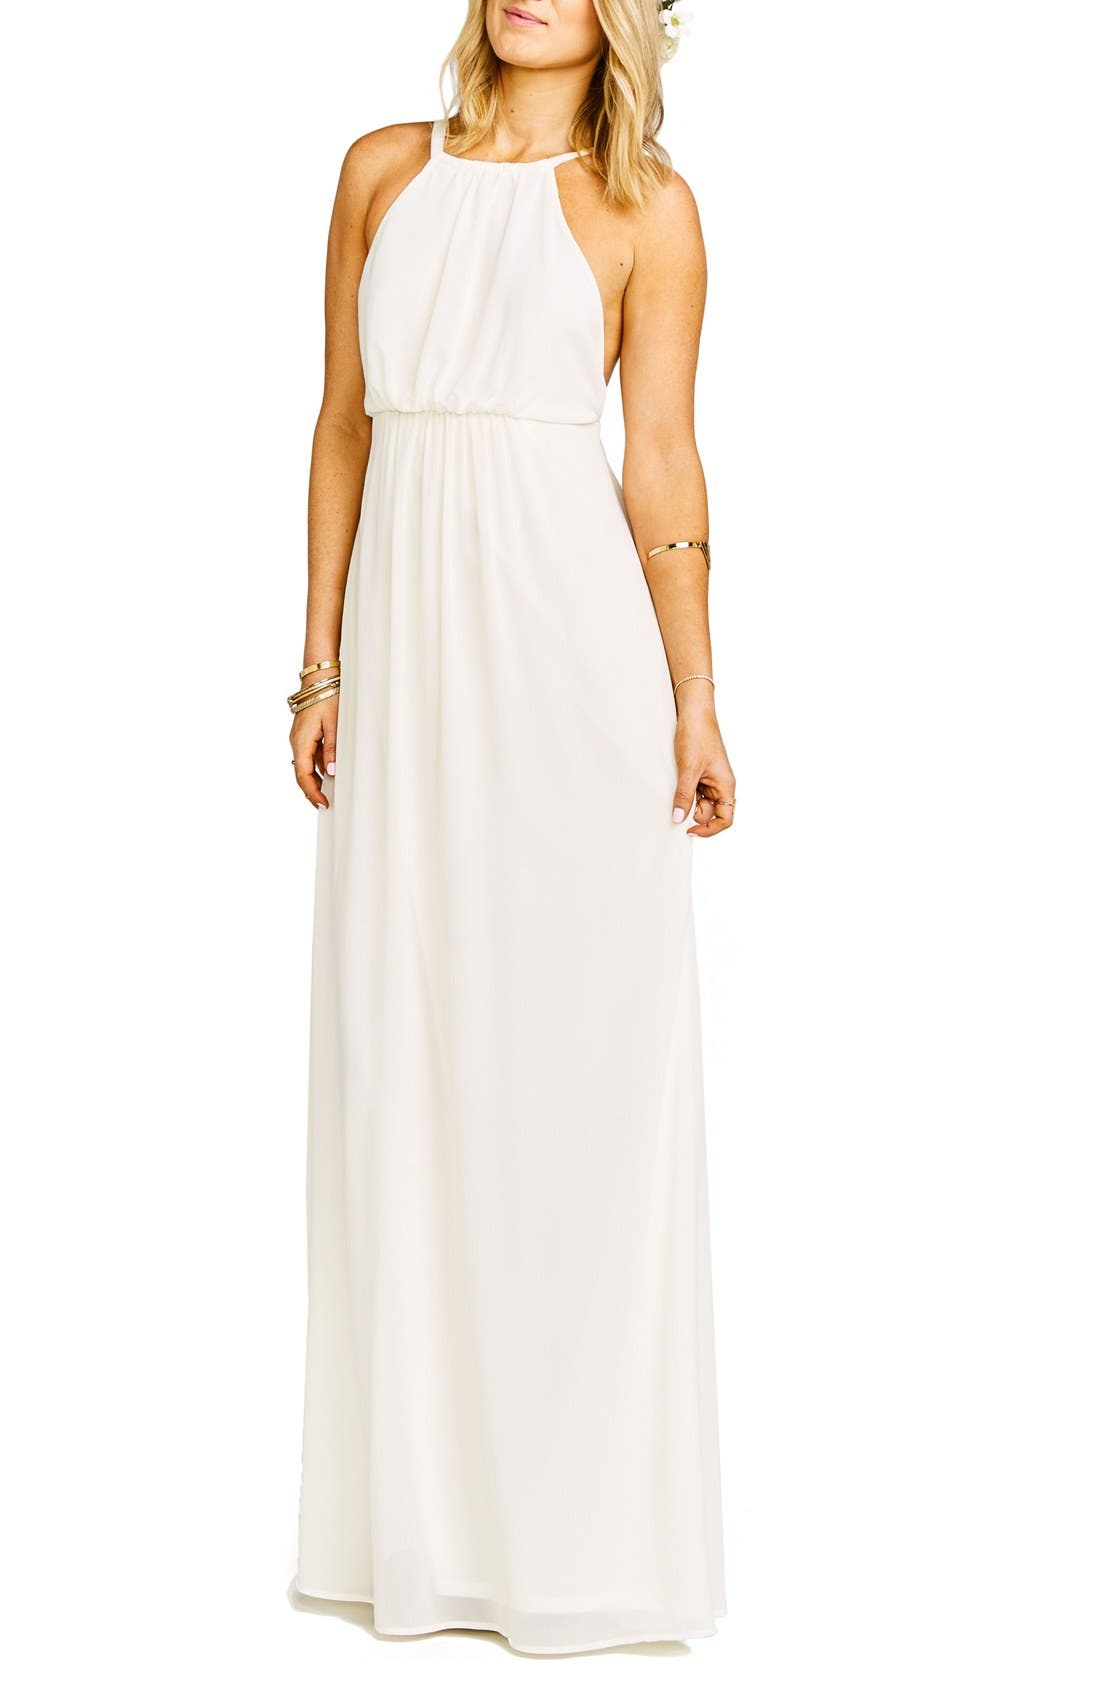 Amanda Open Back Blouson Gown,                             Main thumbnail 3, color,